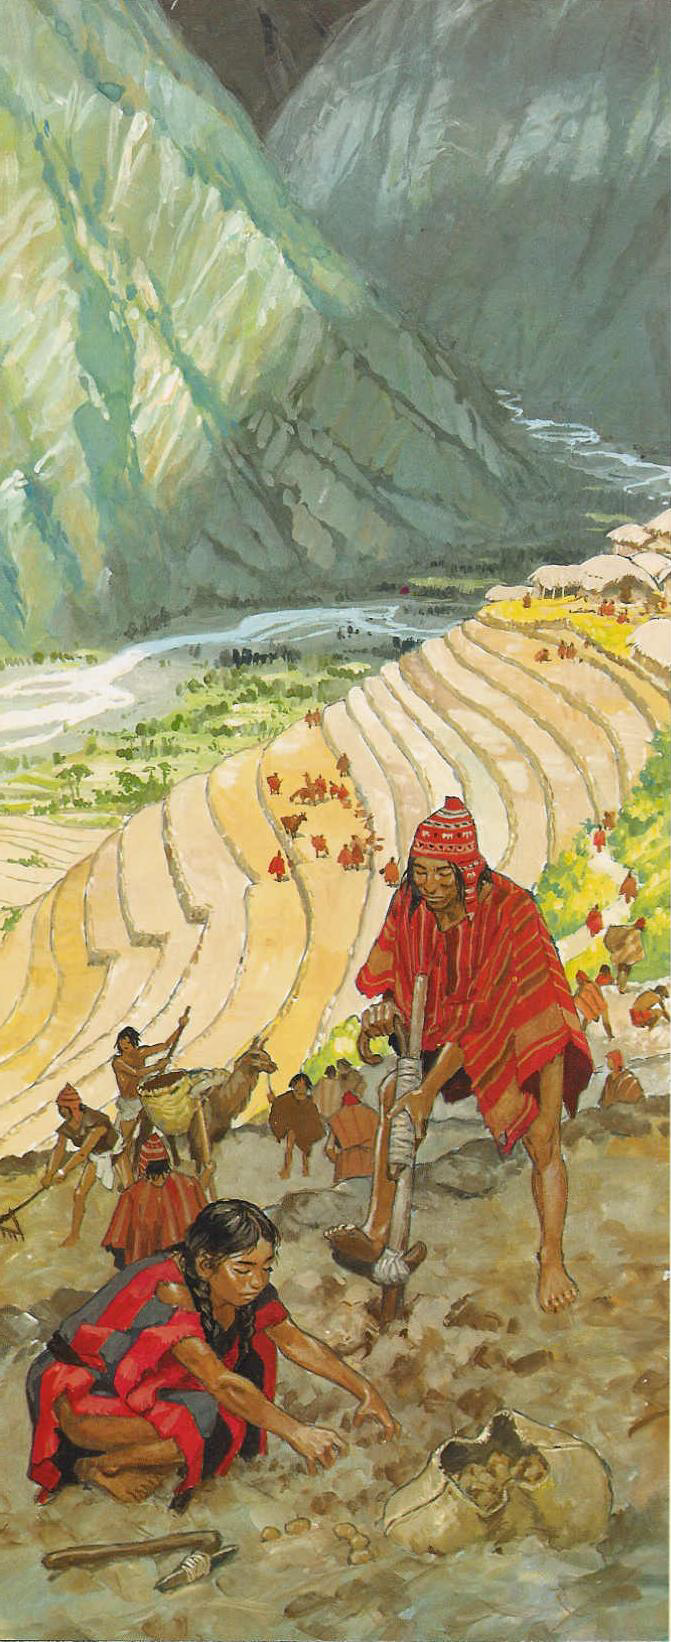 Incan Terraces After Building The Terrace S Shape The Incas Then Constructed Systems Of Canals And Aqueducts To Provide The Terrace Inca Art Inca Empire Inca